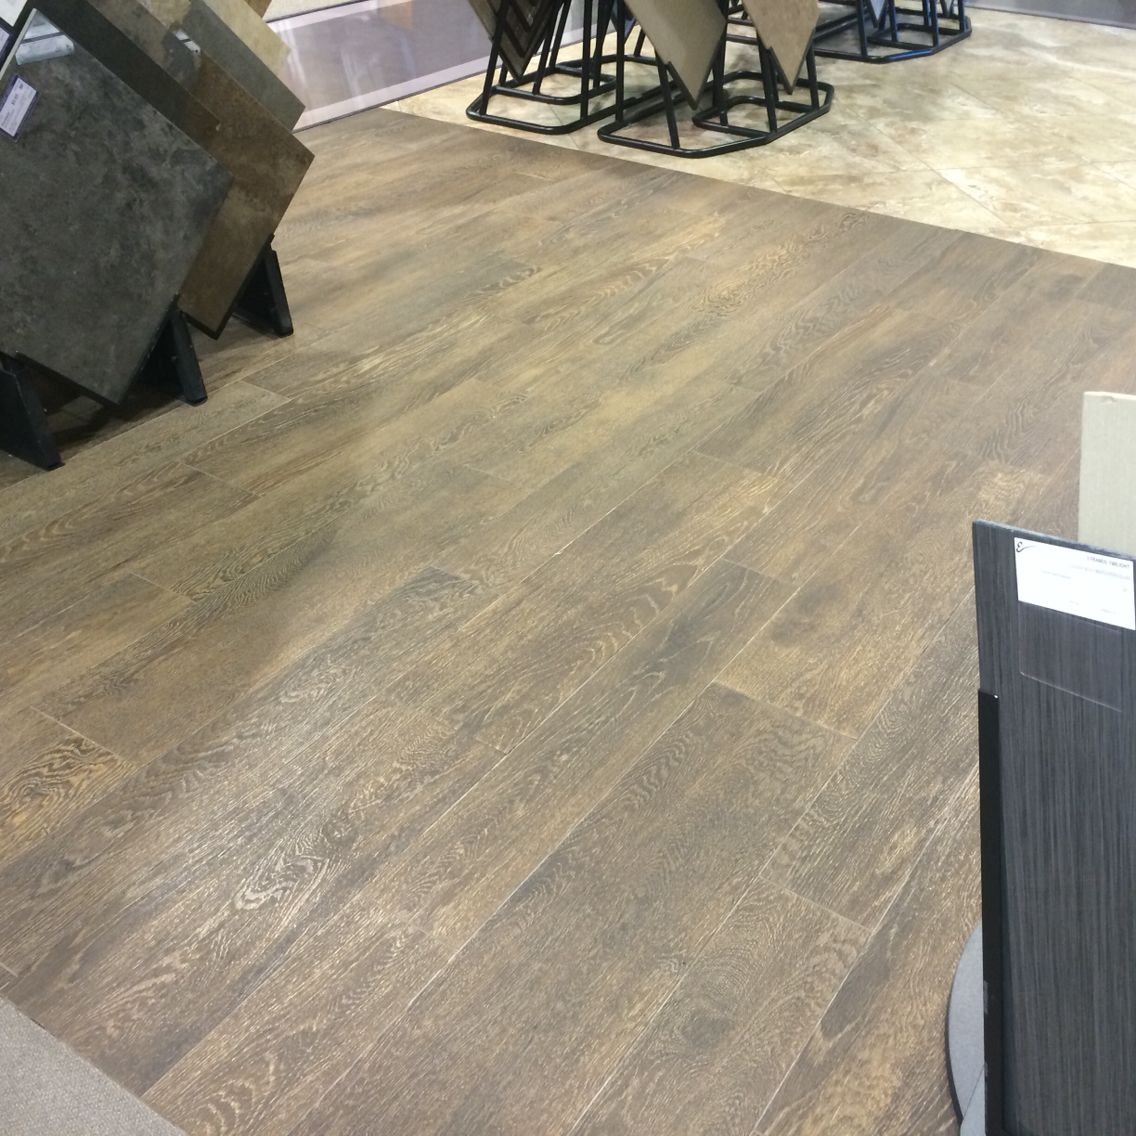 Tile That Looks Exactly Like Wood Comes In 2 Diffe Widths Love Them Mixed This 3 Colors Black Brown Natural Ragno Cambridge Oak